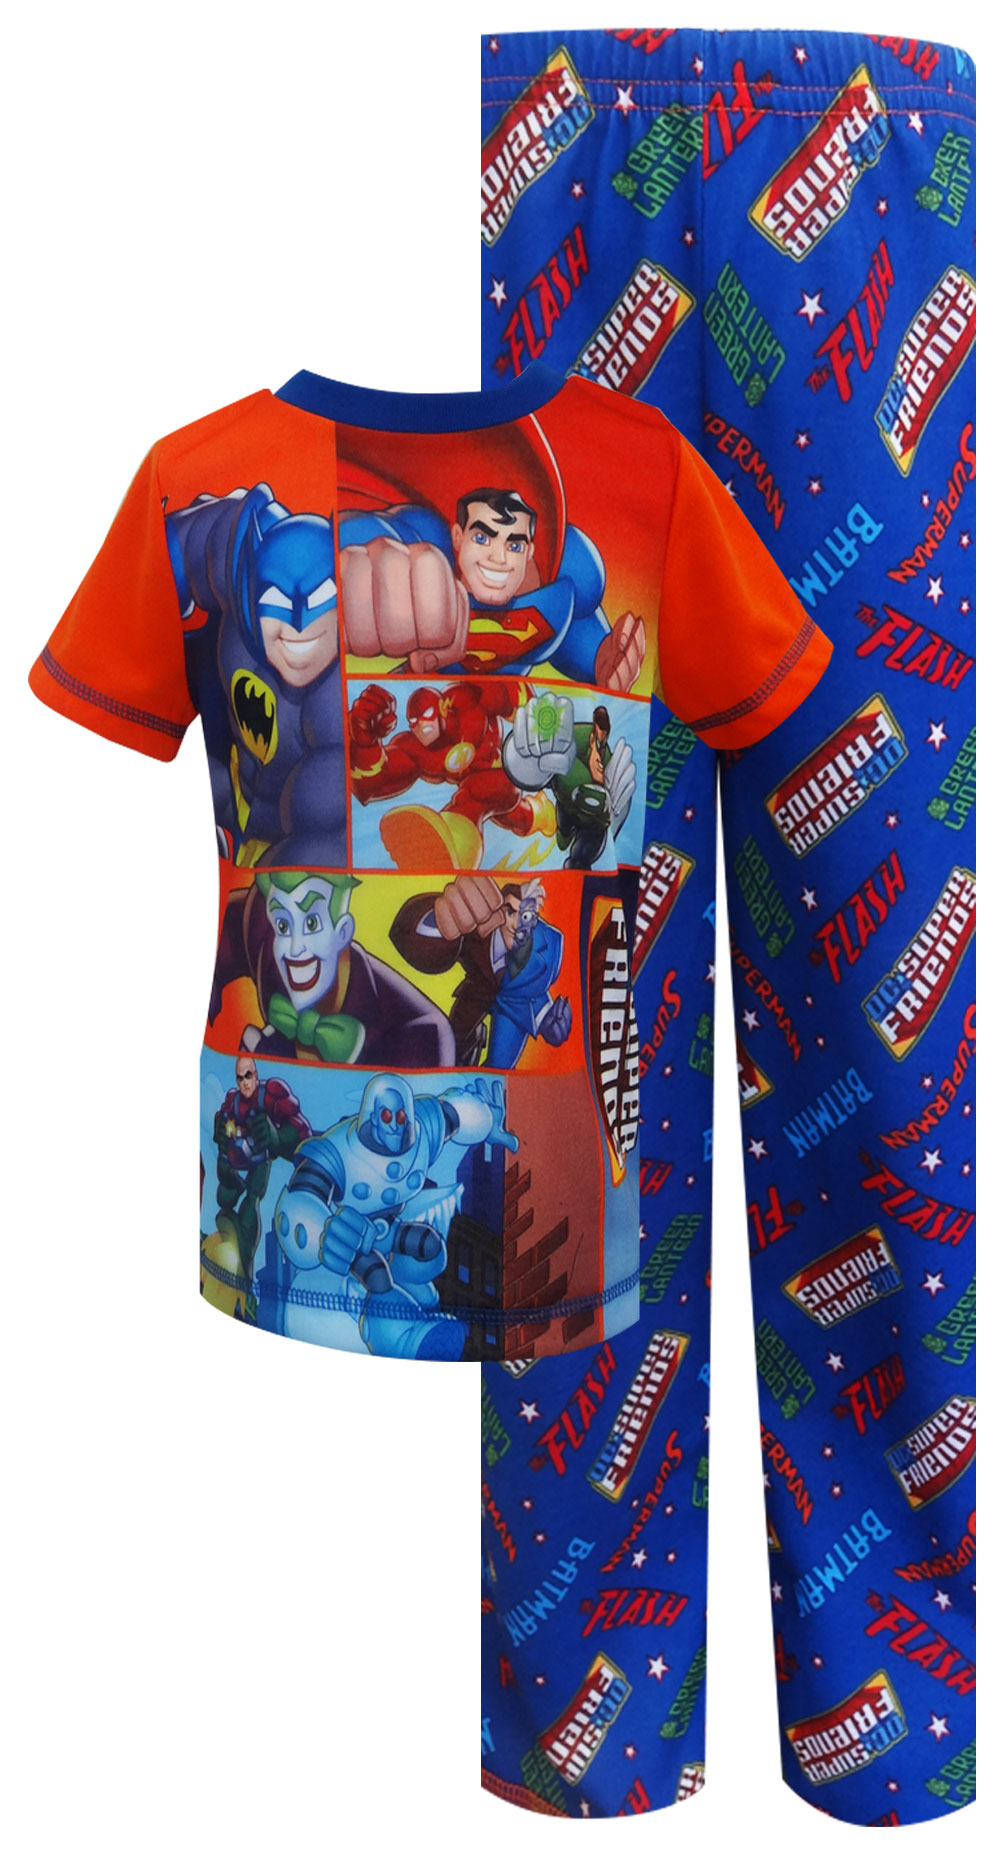 Image of DC Comics Super Friends Heroes and Villains Toddler Pajama for boys